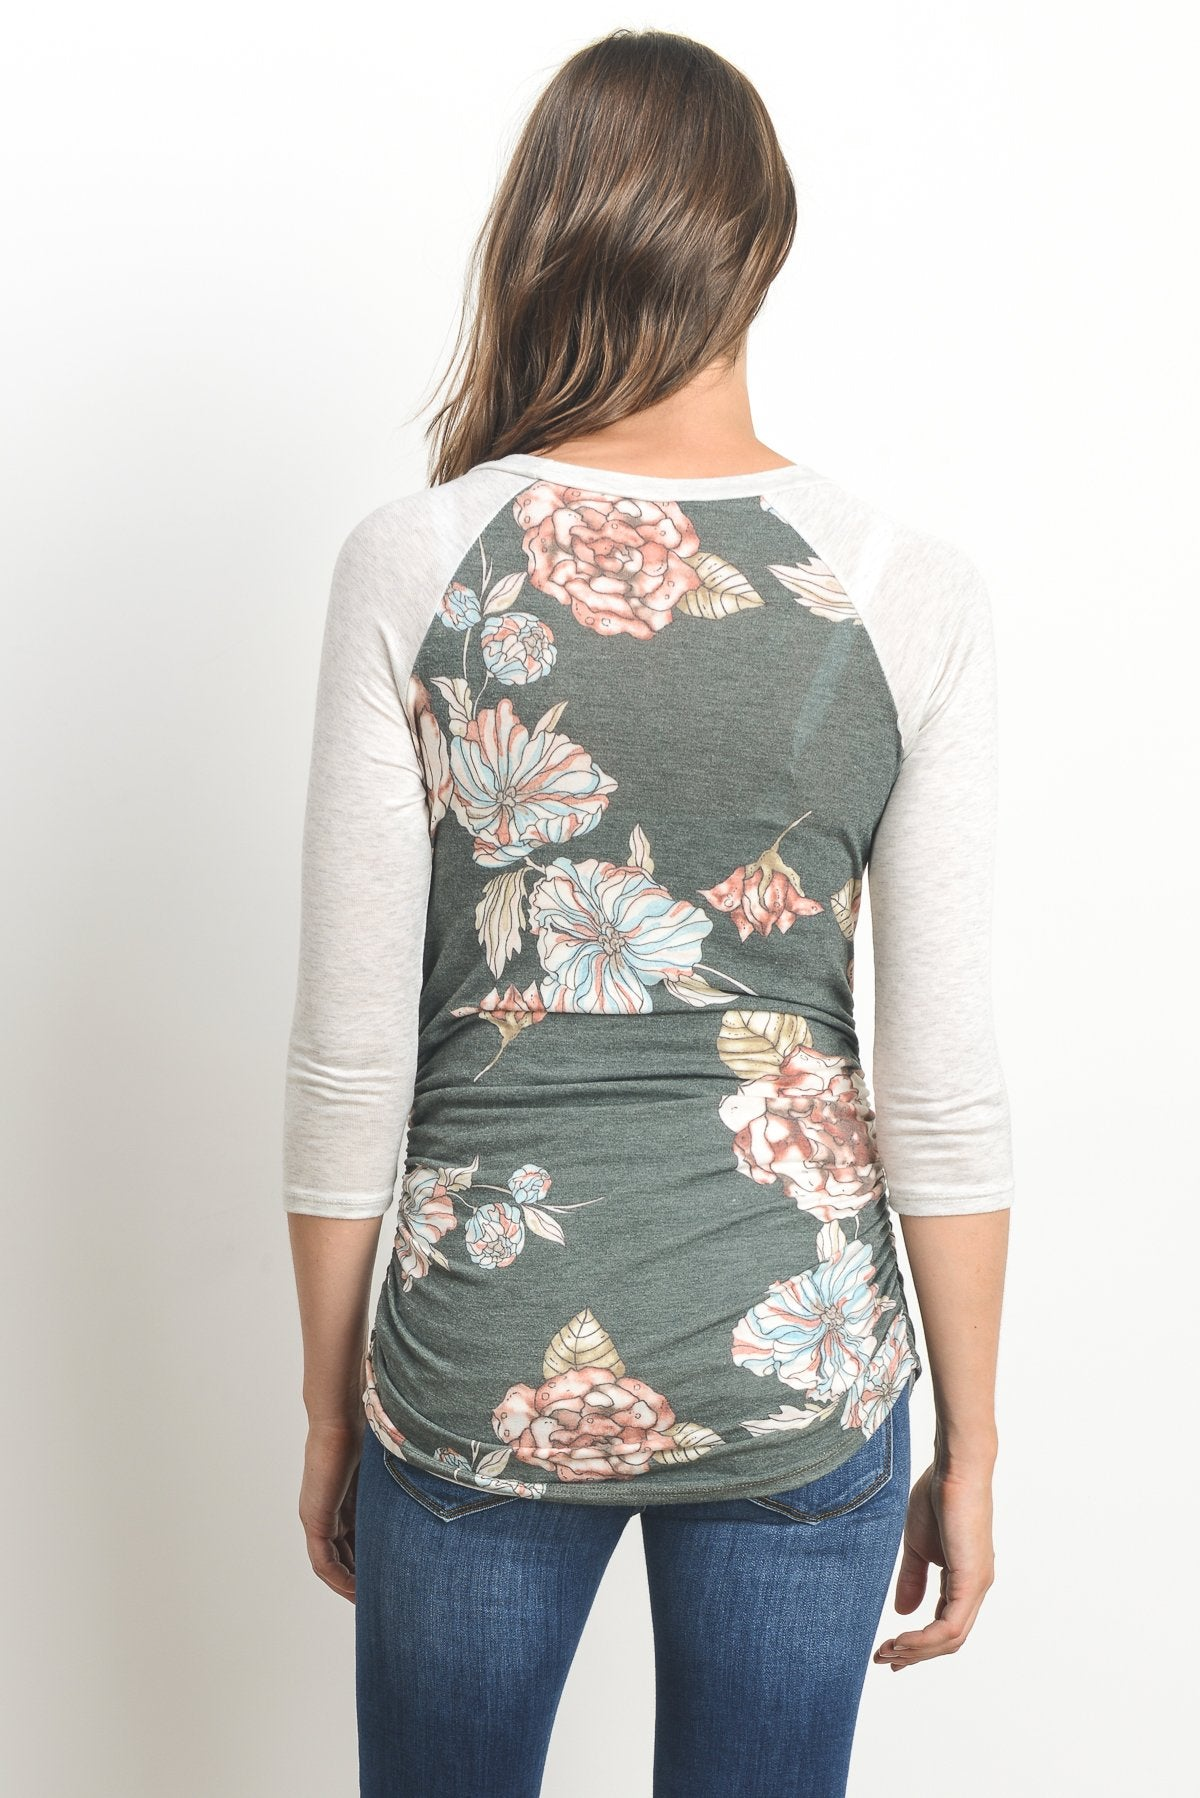 Floral Raglan Maternity Tee, Graphic